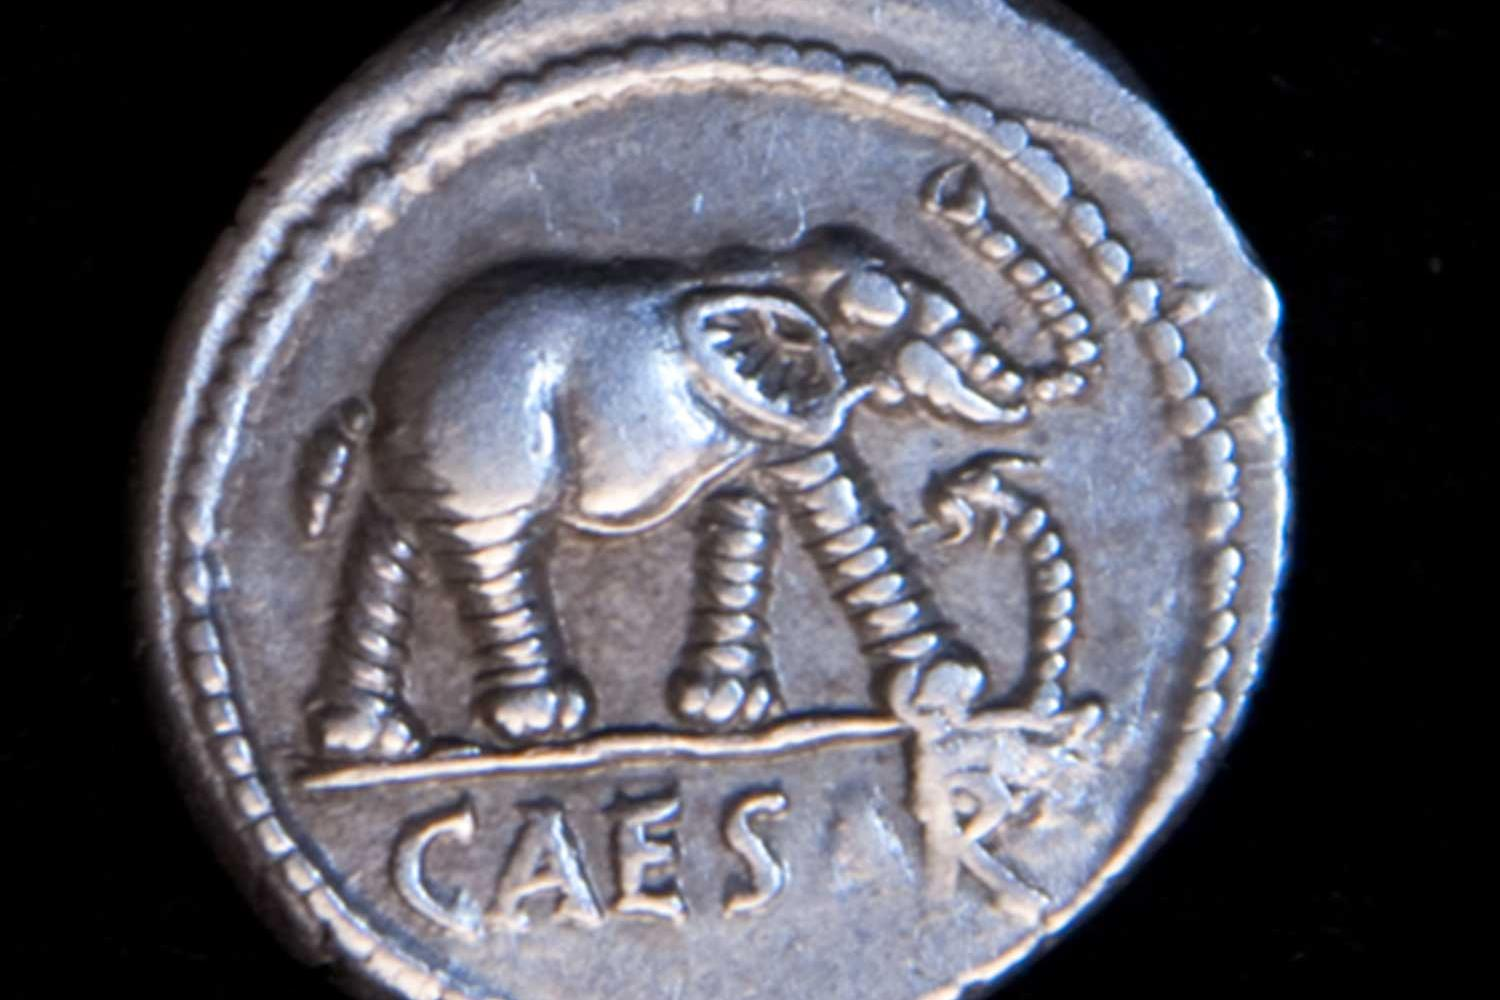 Detail of a silver coin with an elephant stamped on it with the word Caesar underneath